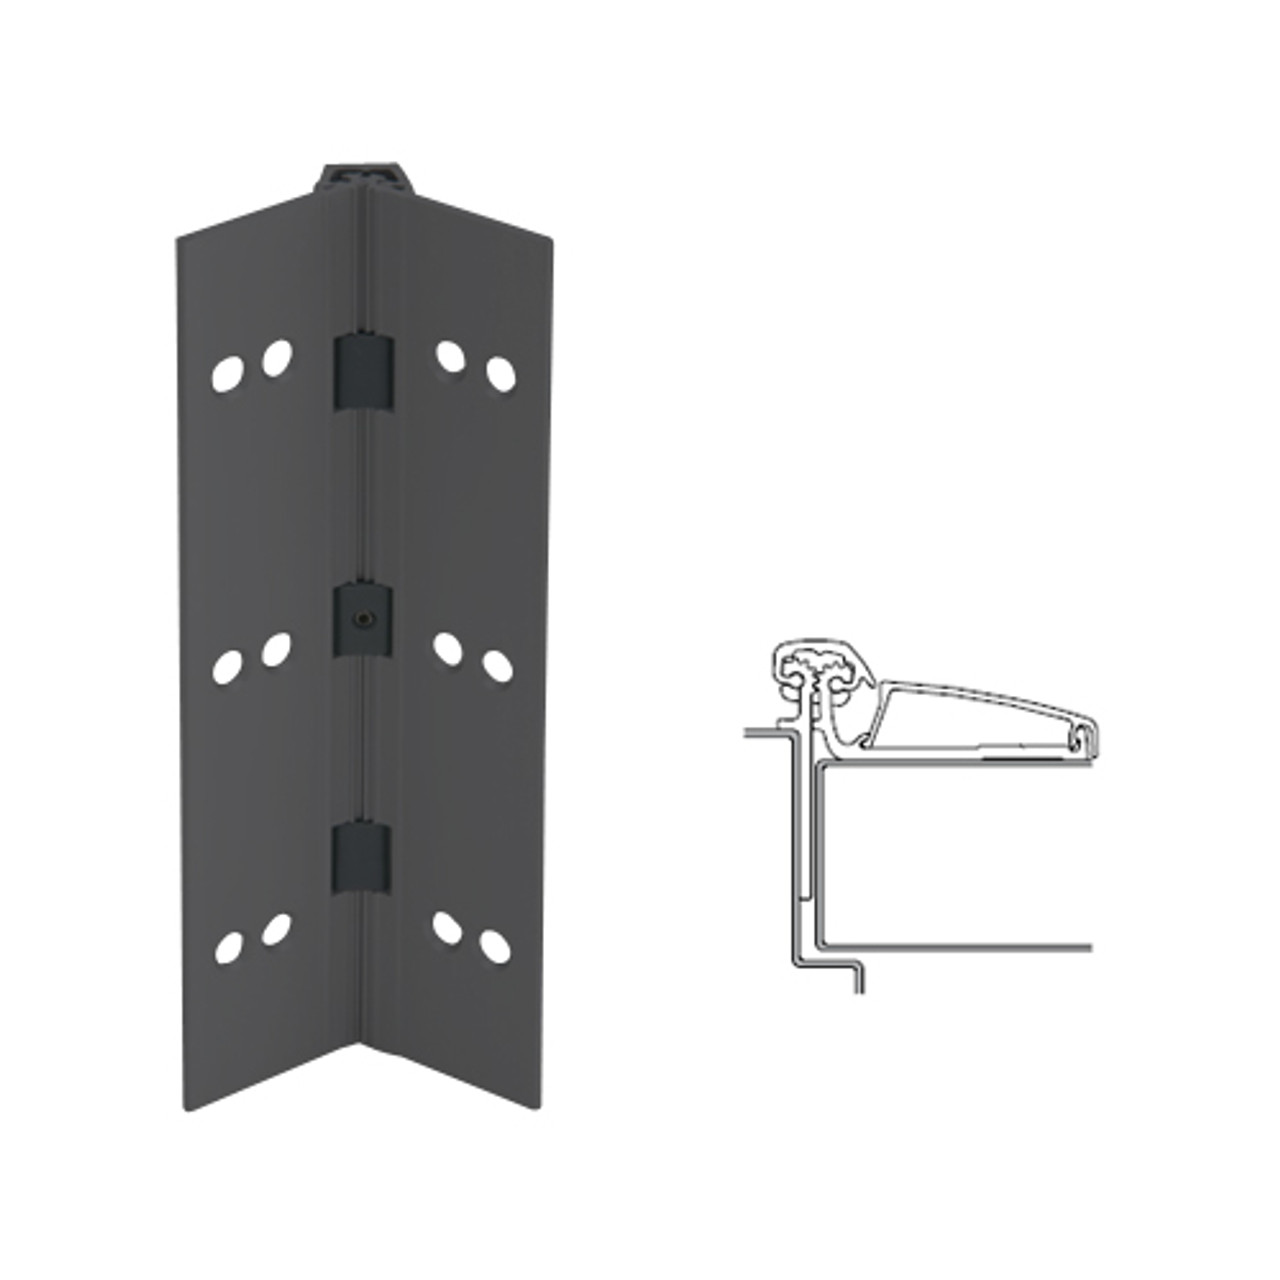 045XY-315AN-83-SECHM IVES Adjustable Half Surface Continuous Geared Hinges with Security Screws - Hex Pin Drive in Anodized Black